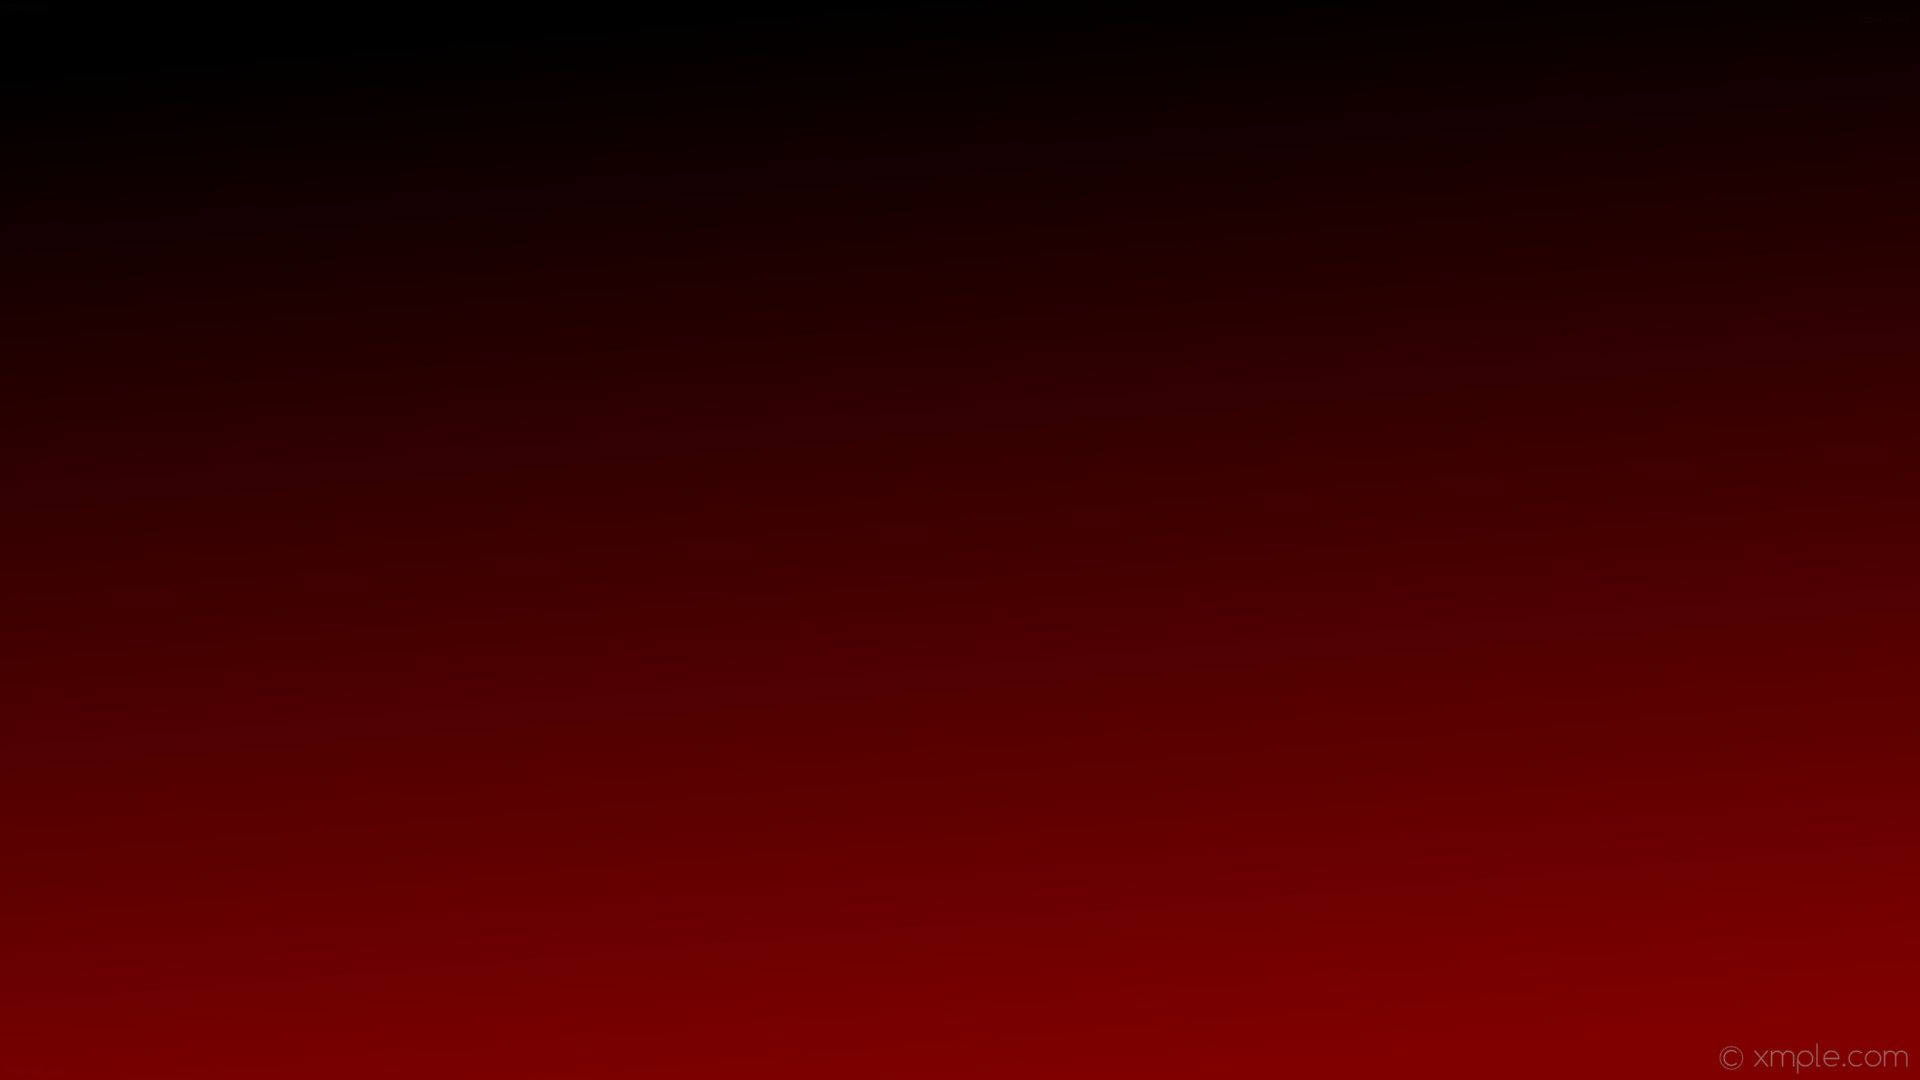 Pink And Black Gradient Backgrounds Red Sunset Wallpaper Display Iphone Wallpaper